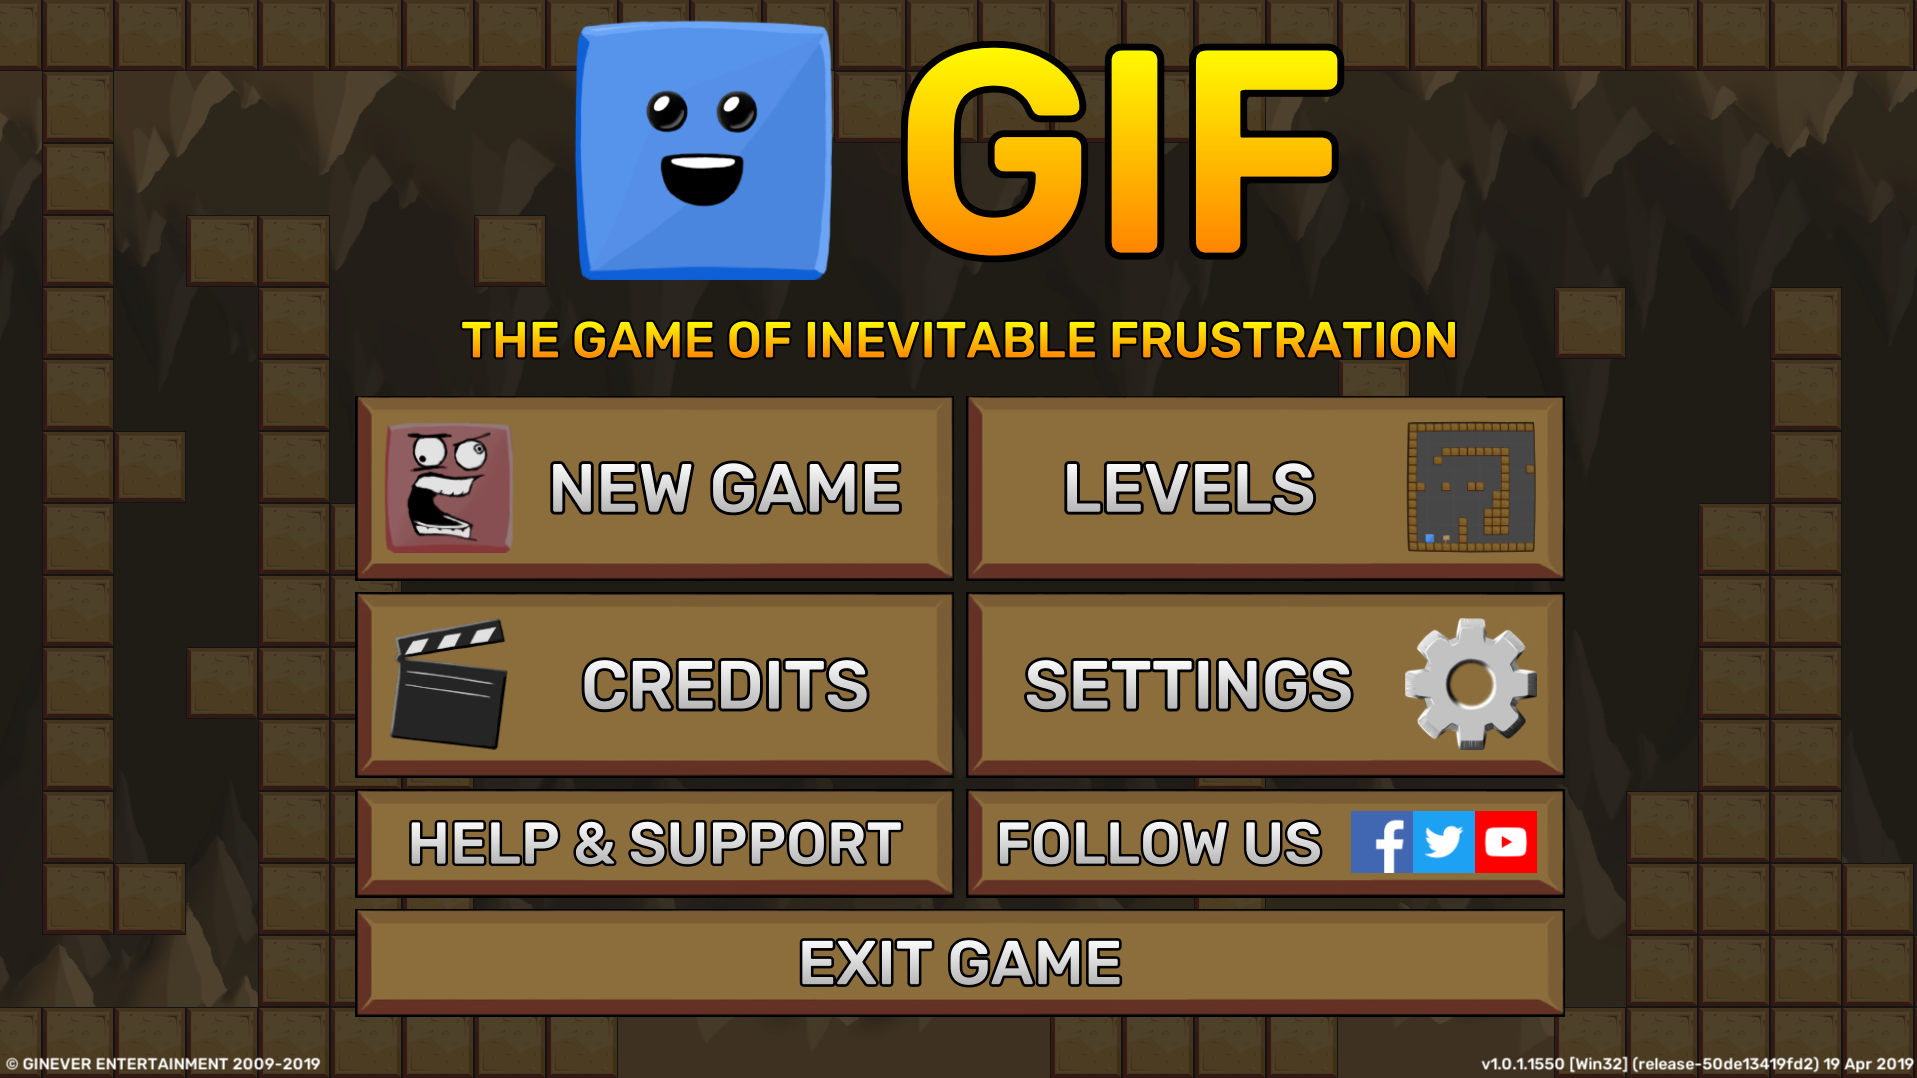 The Game of Inevitable Frustration